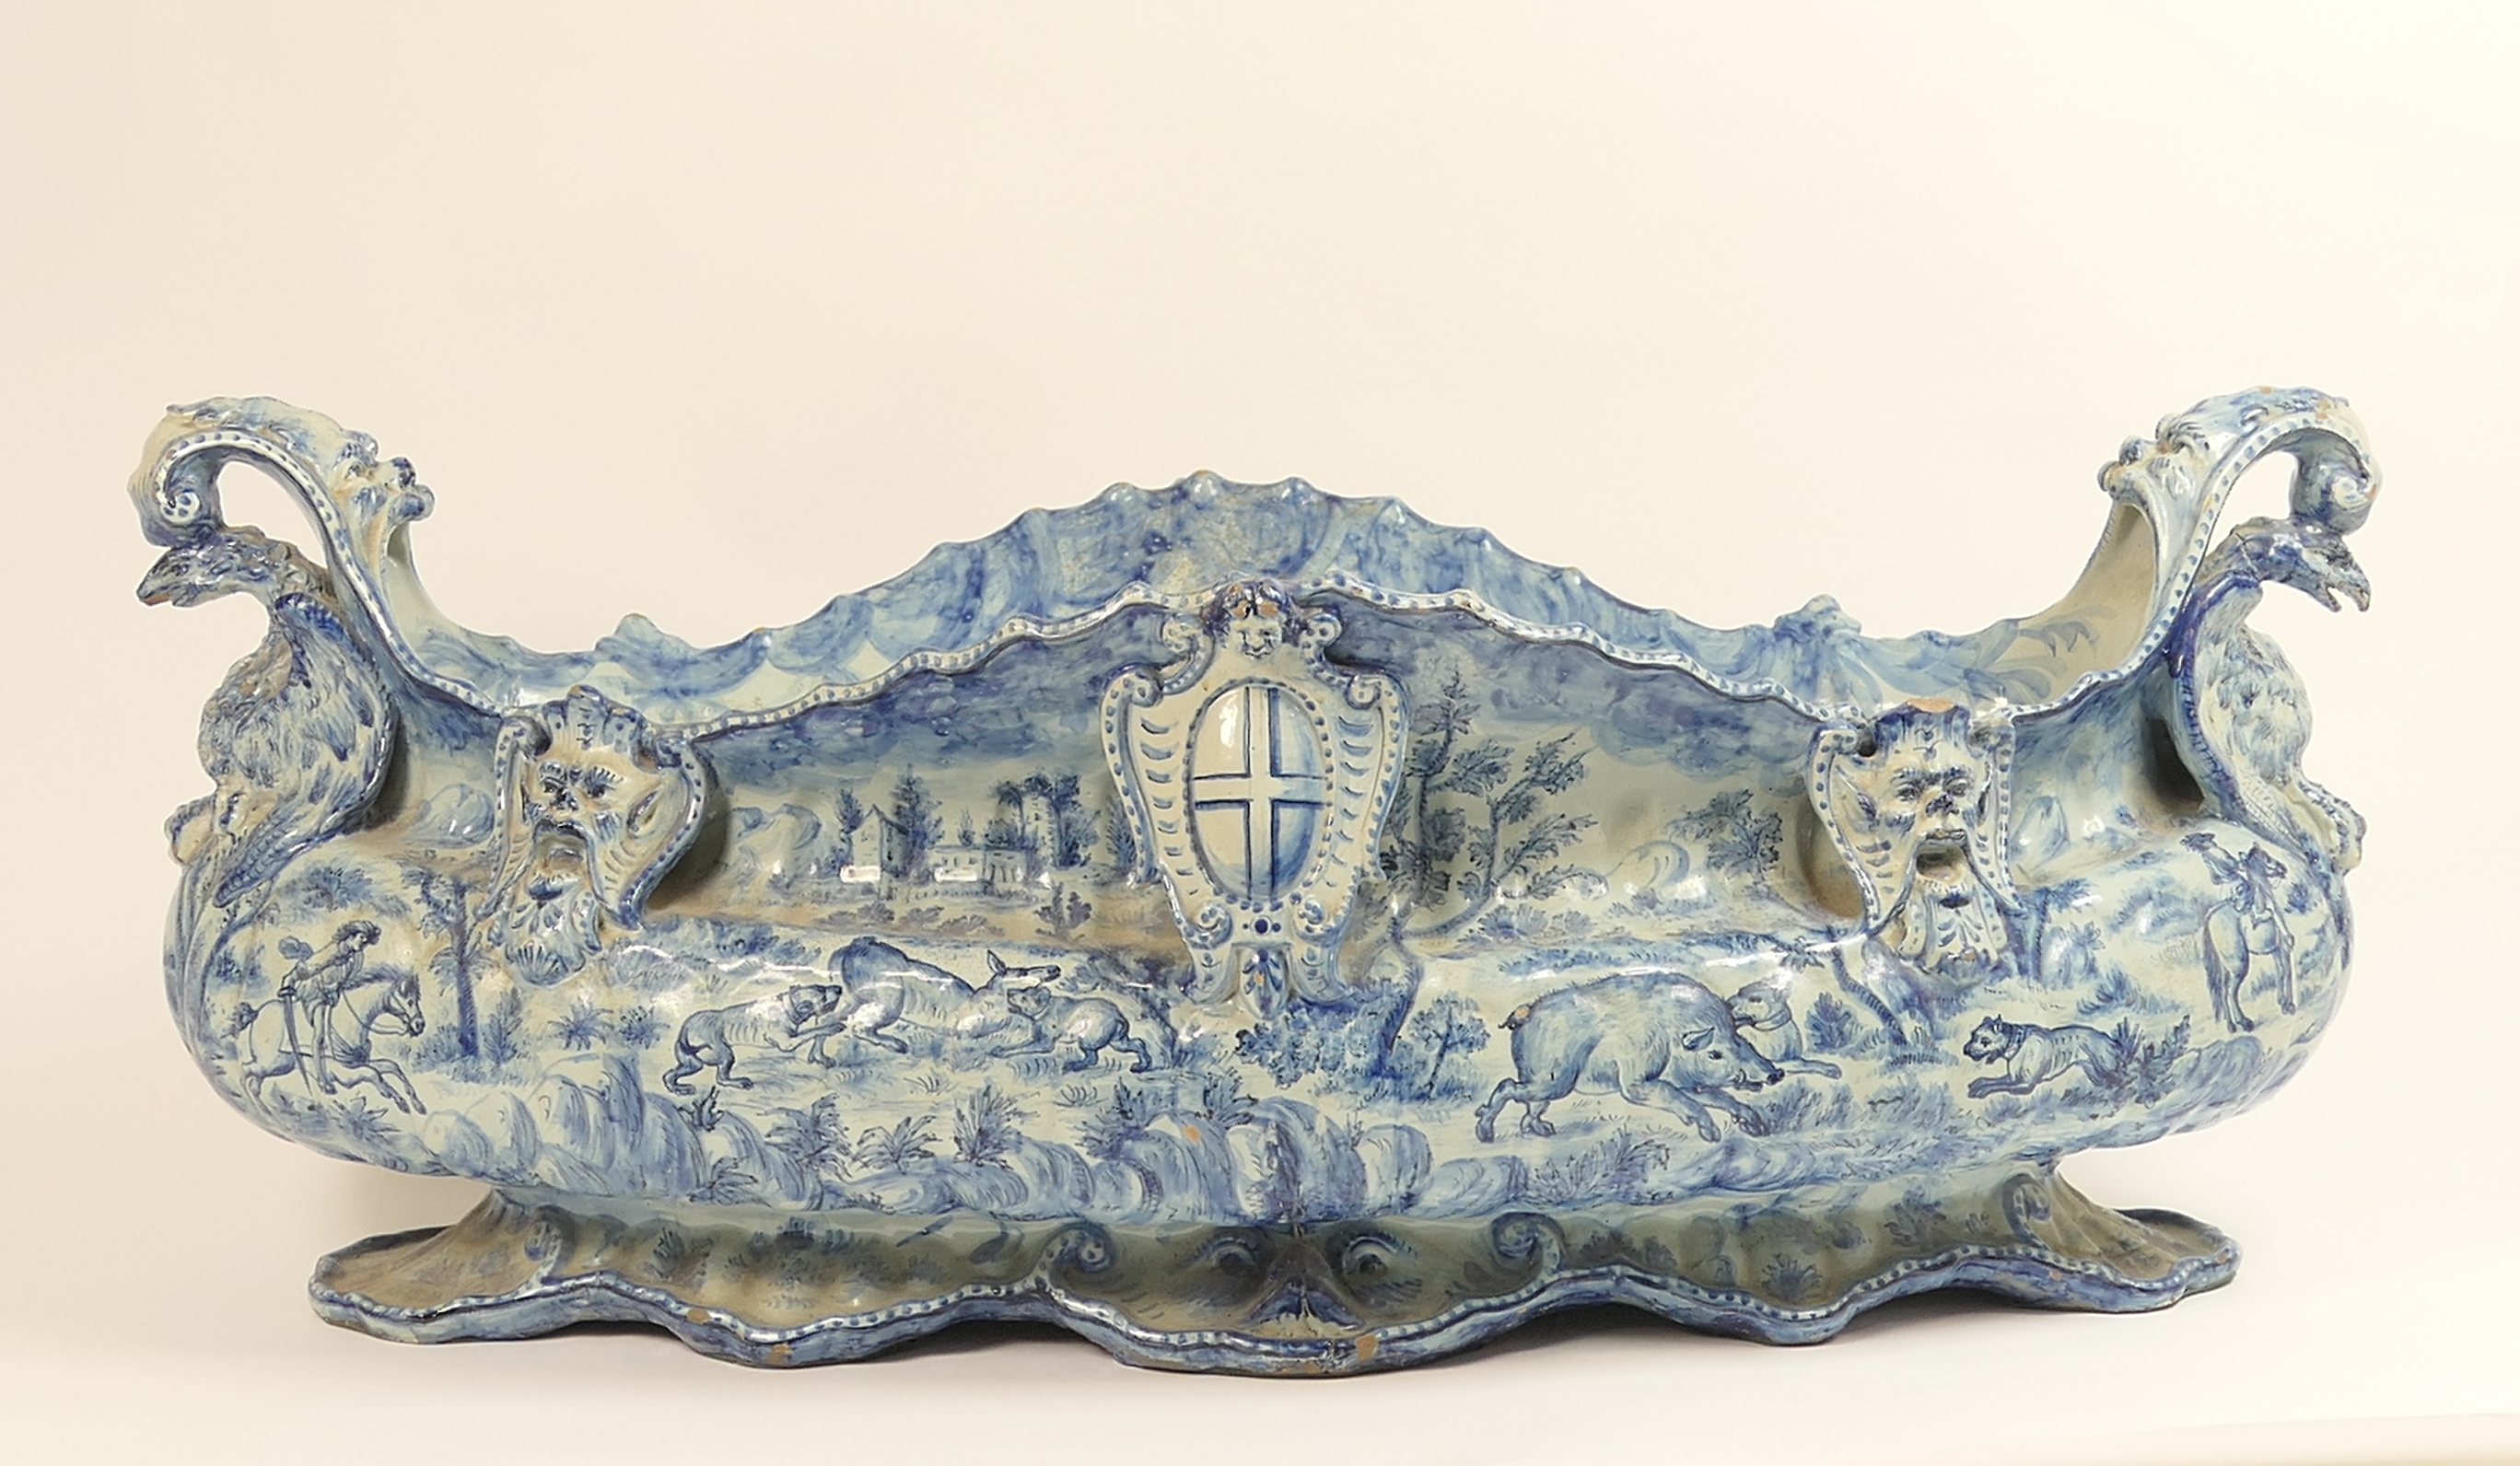 Lot 28 - Impressive and large Savona blue and white maiolica table centre, 19th Century, boat shape with mask